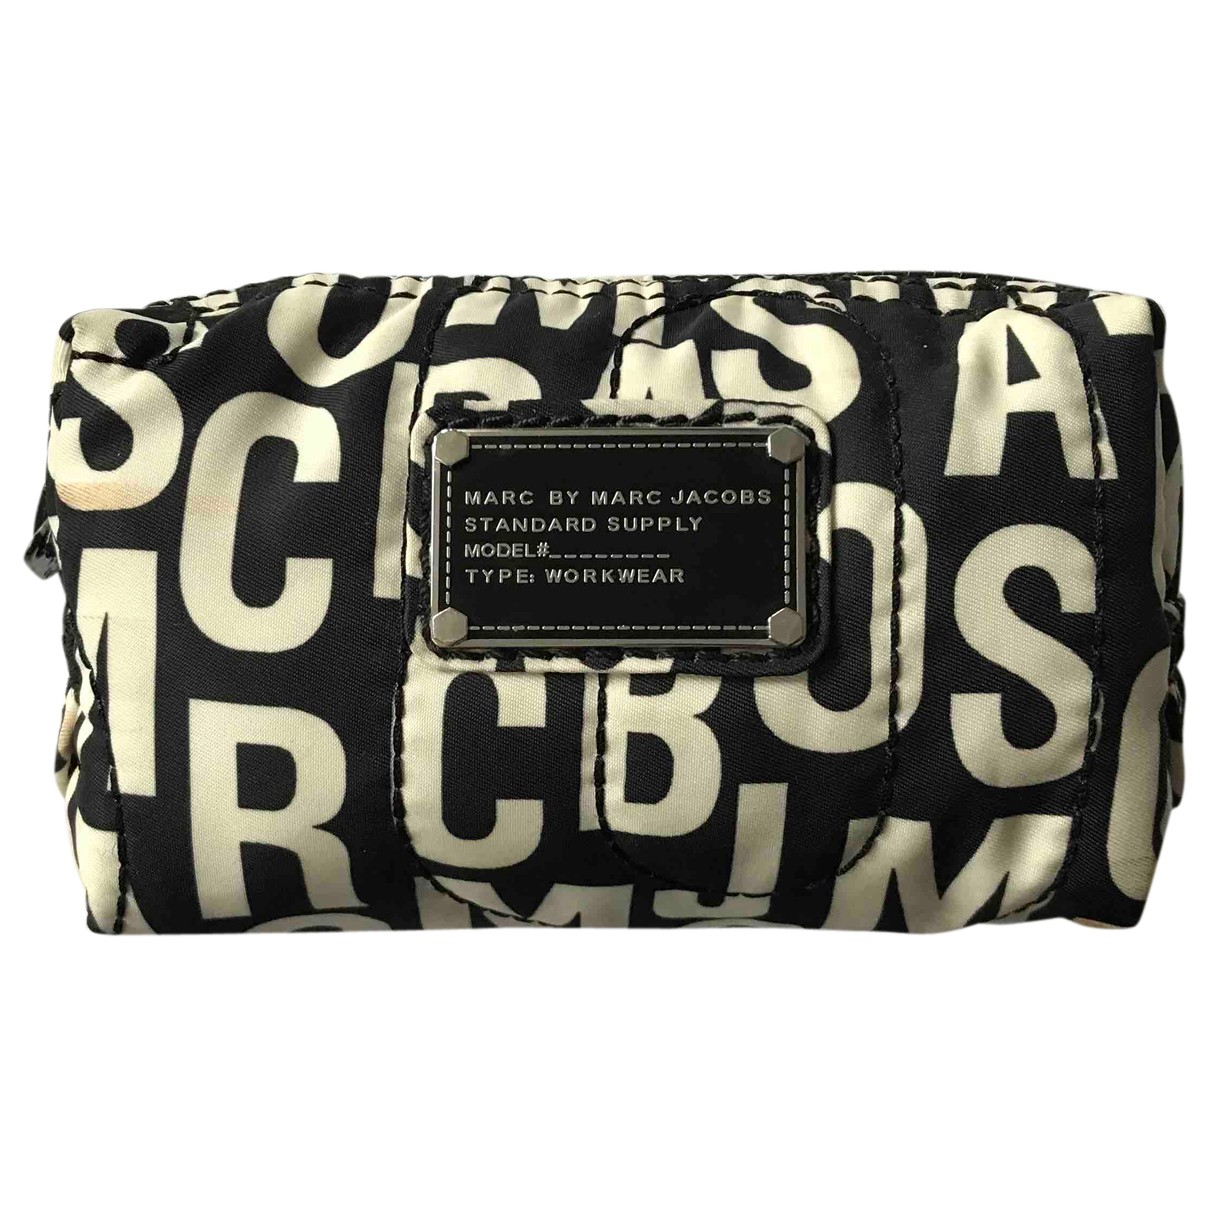 Marc By Marc Jacobs N Black Cloth Purses, wallet & cases for Women N